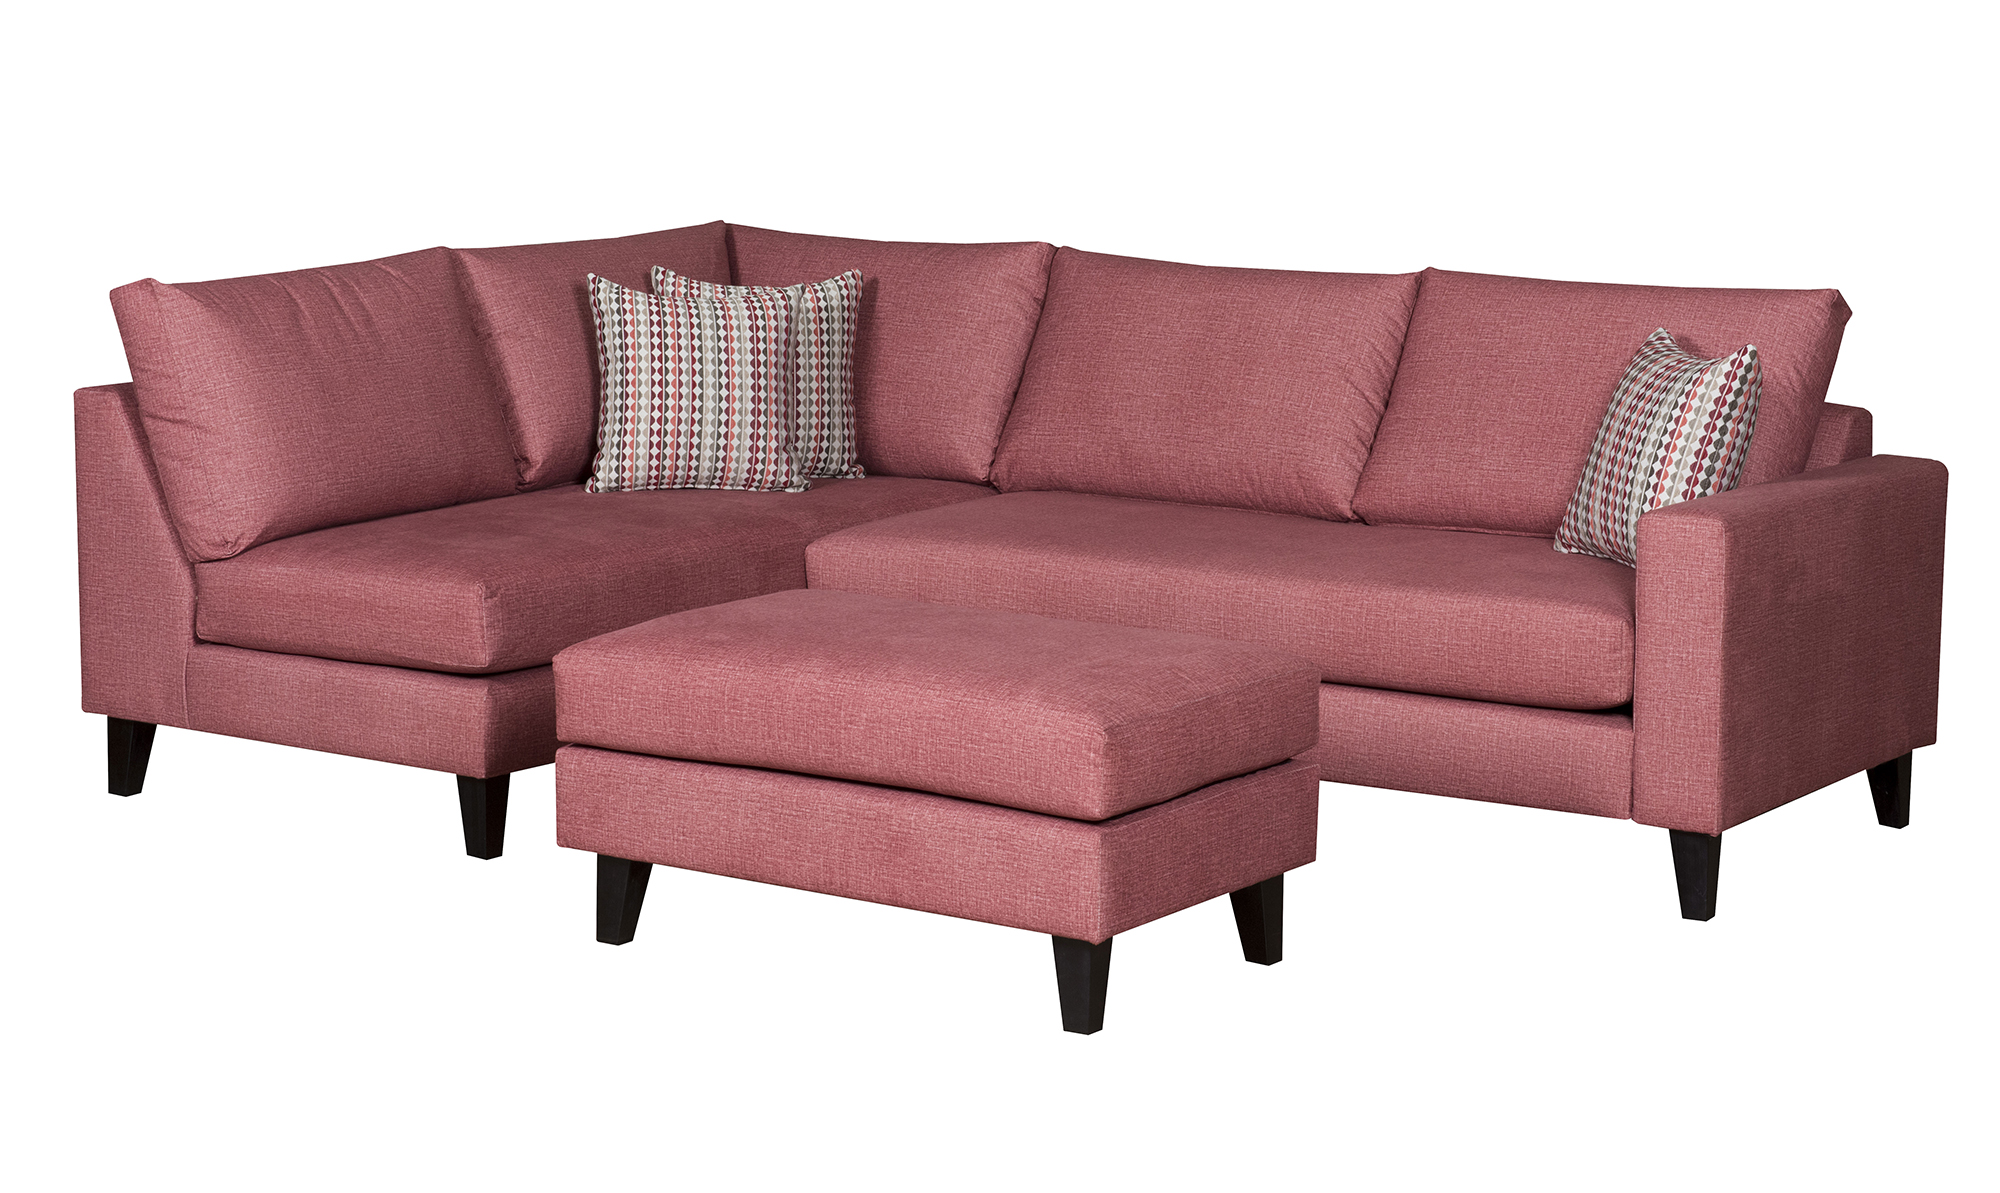 furniture lounge red